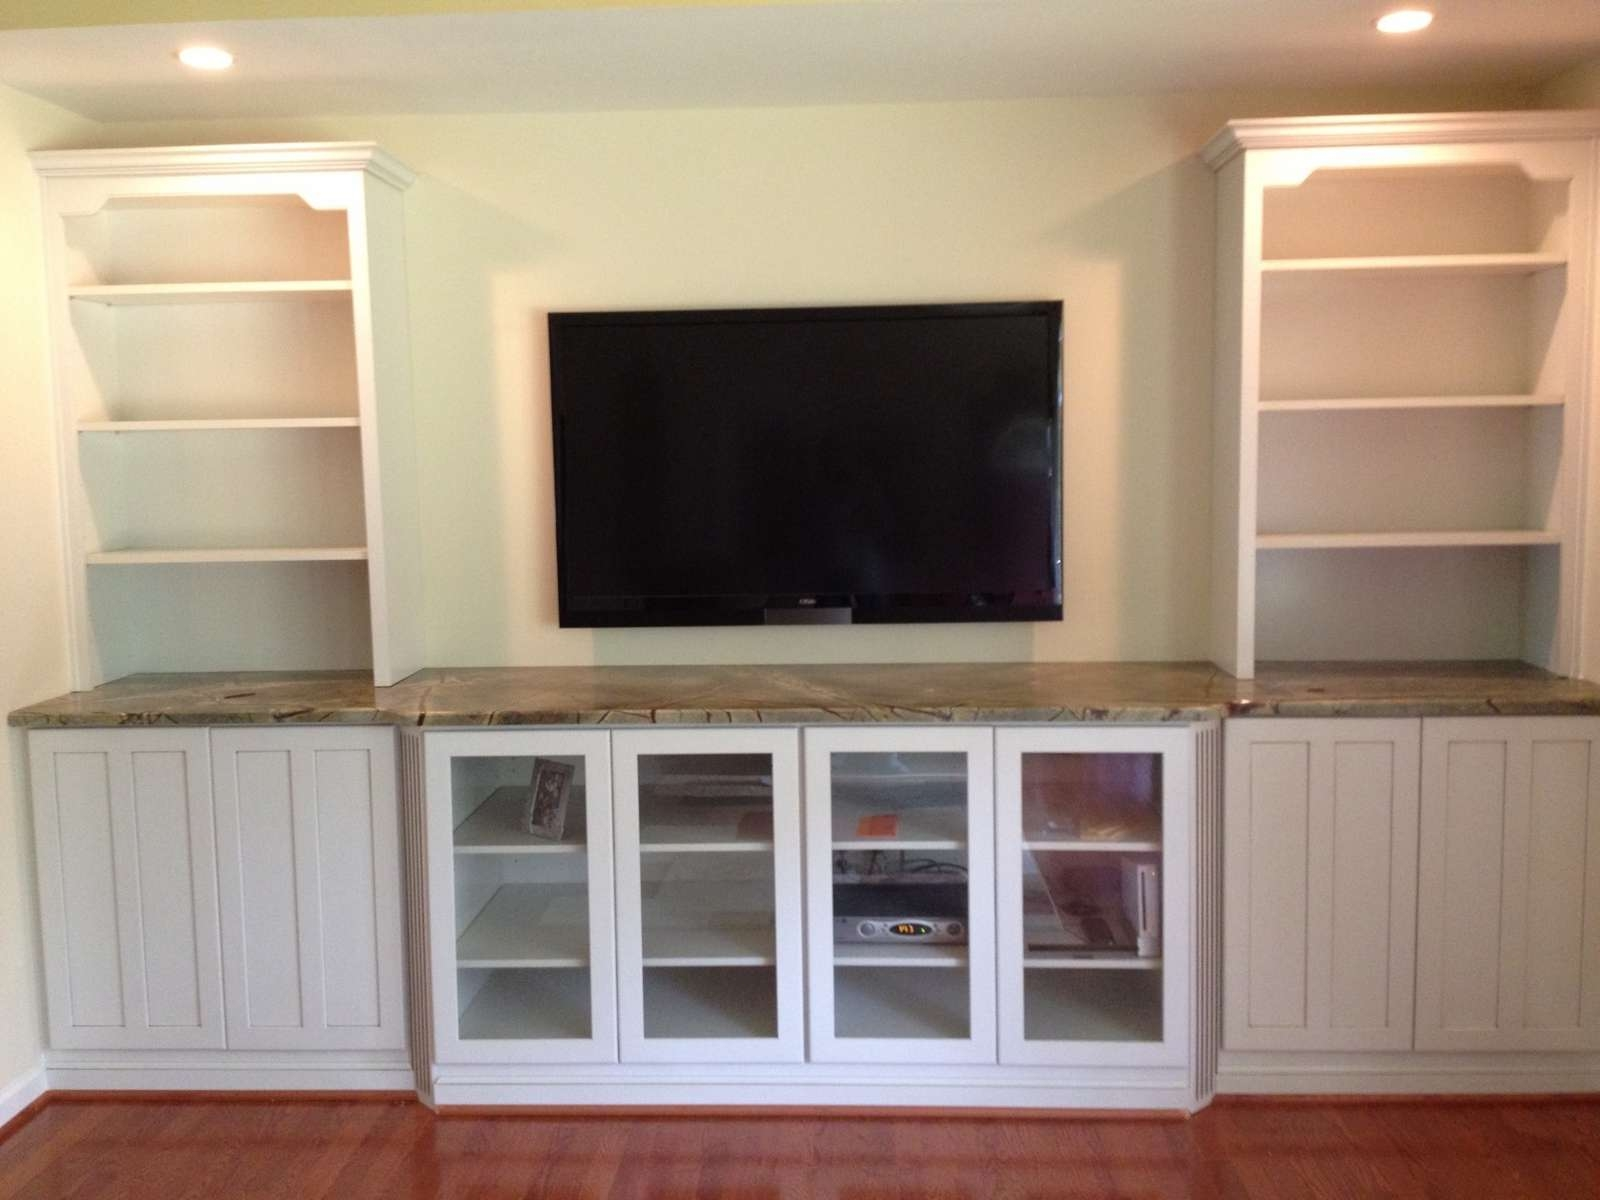 2018 Latest Under Tv Cabinets